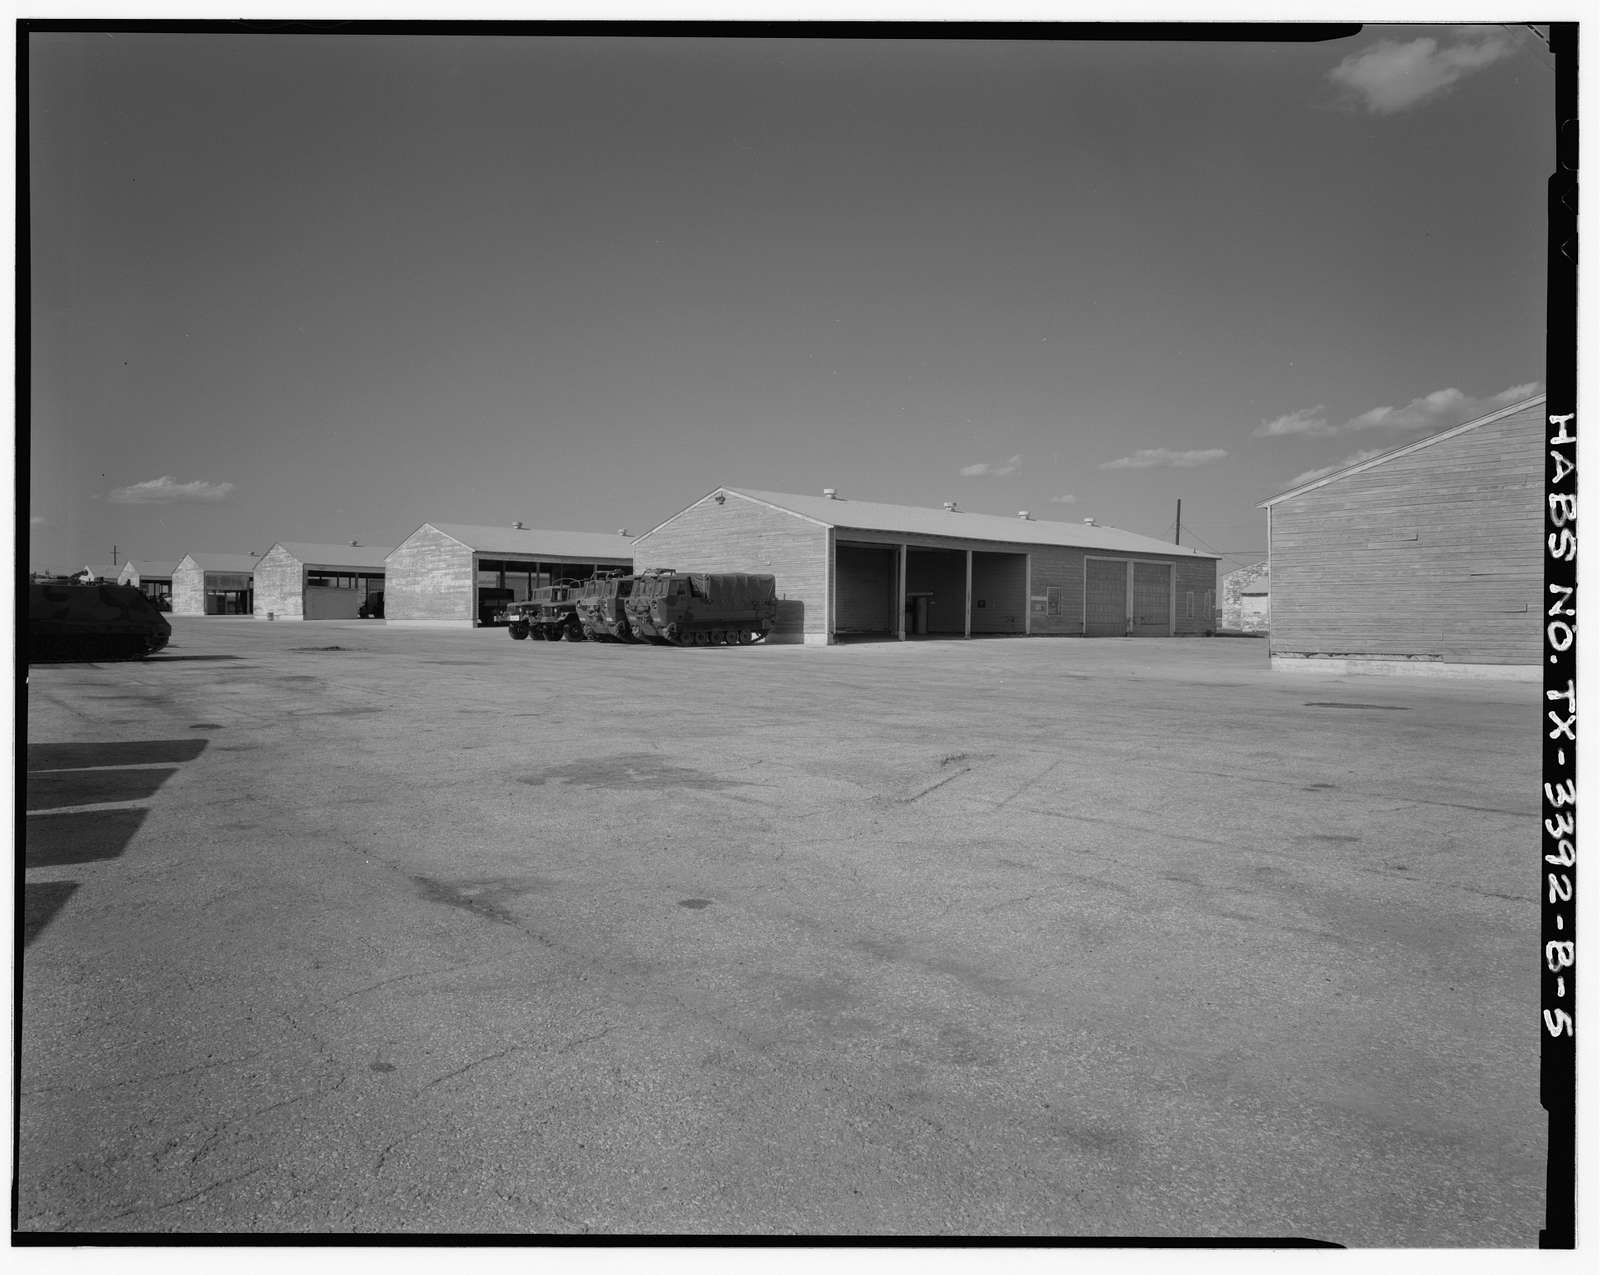 Fort Hood, World War II Temporary Buildings, Company Maintenance Shop & Arms Room, North of Park Avenue at Forty-ninth Street, Killeen, Bell County, TX